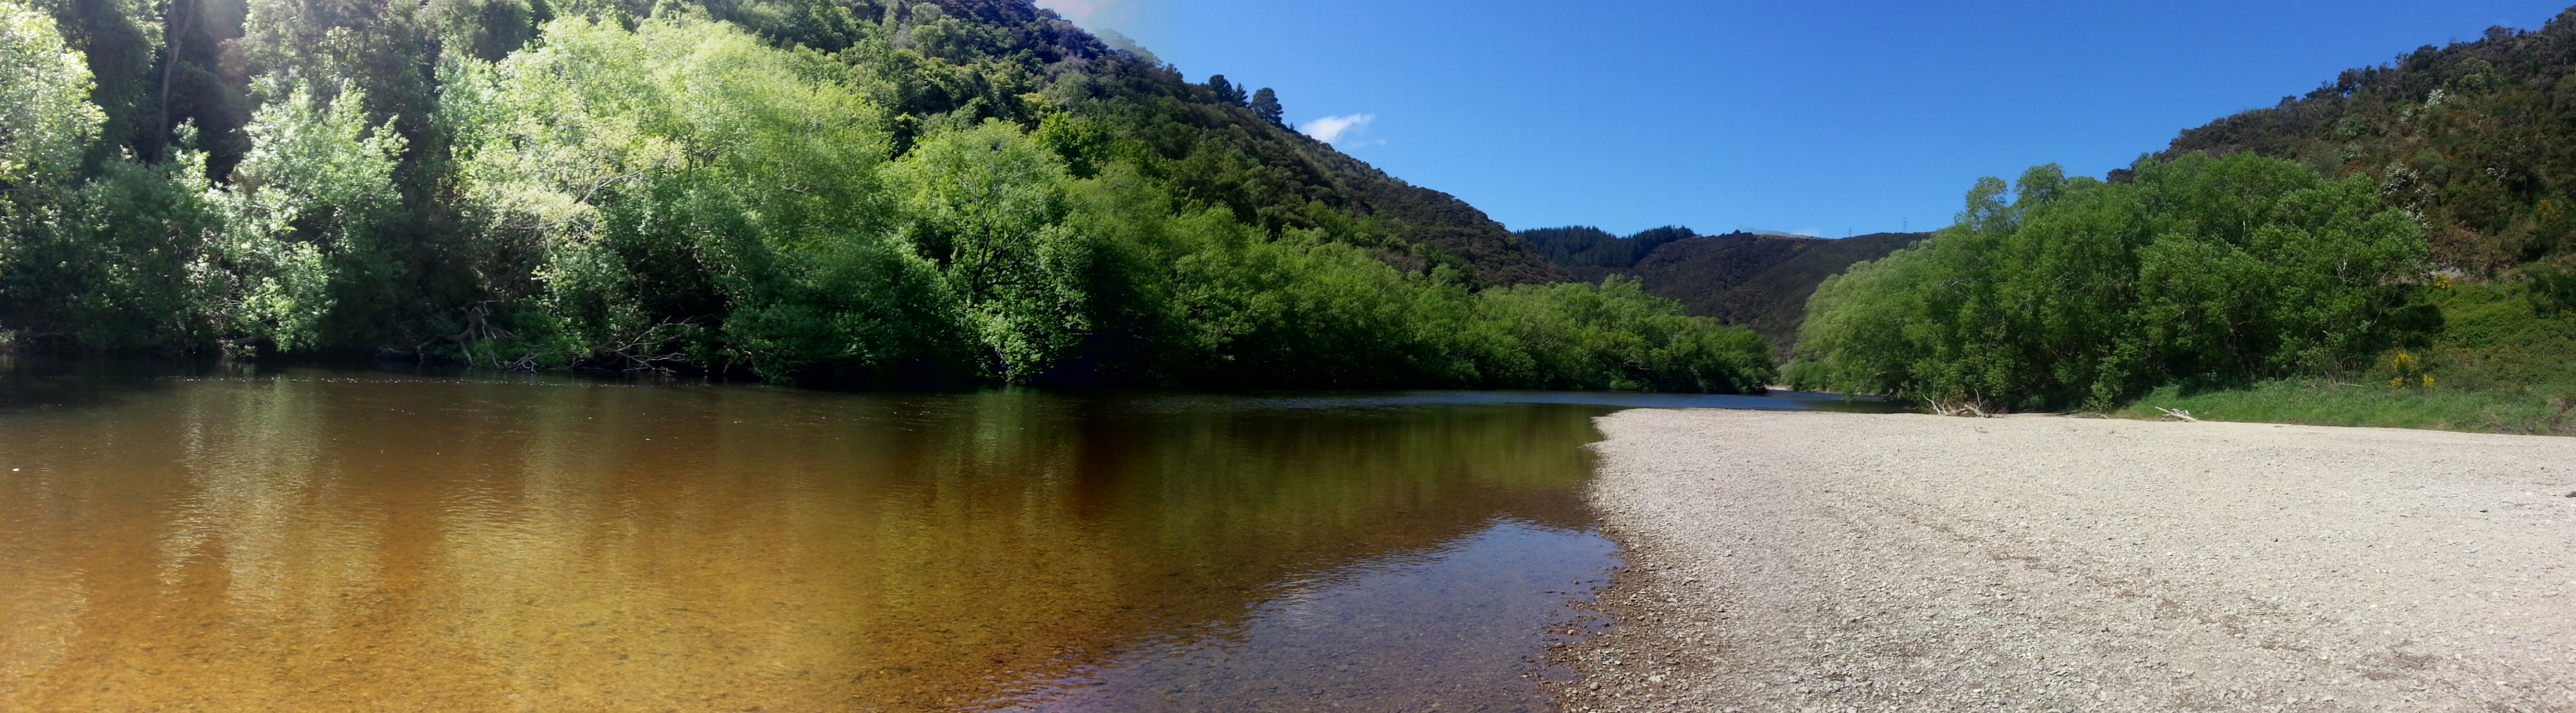 Fishing at Outram Glen